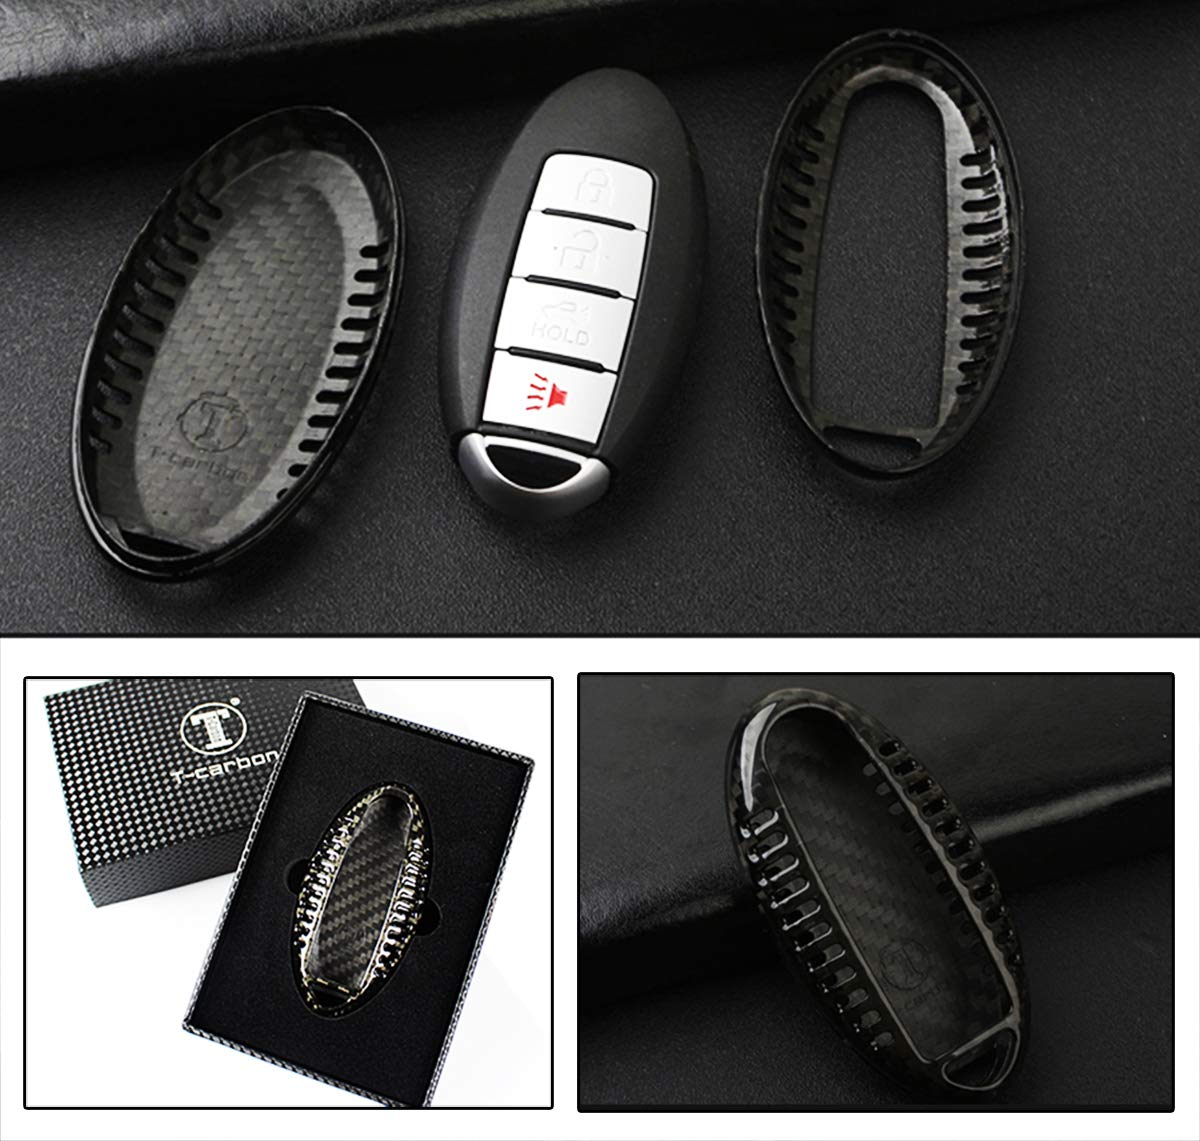 Luxury Real Carbon Fiber SNAP ON CASE for Infiniti Models Key KEYLESS FOB REMOTE-Q50 Q70 Q60 G37 G35 QX FX Cuztom Tuning